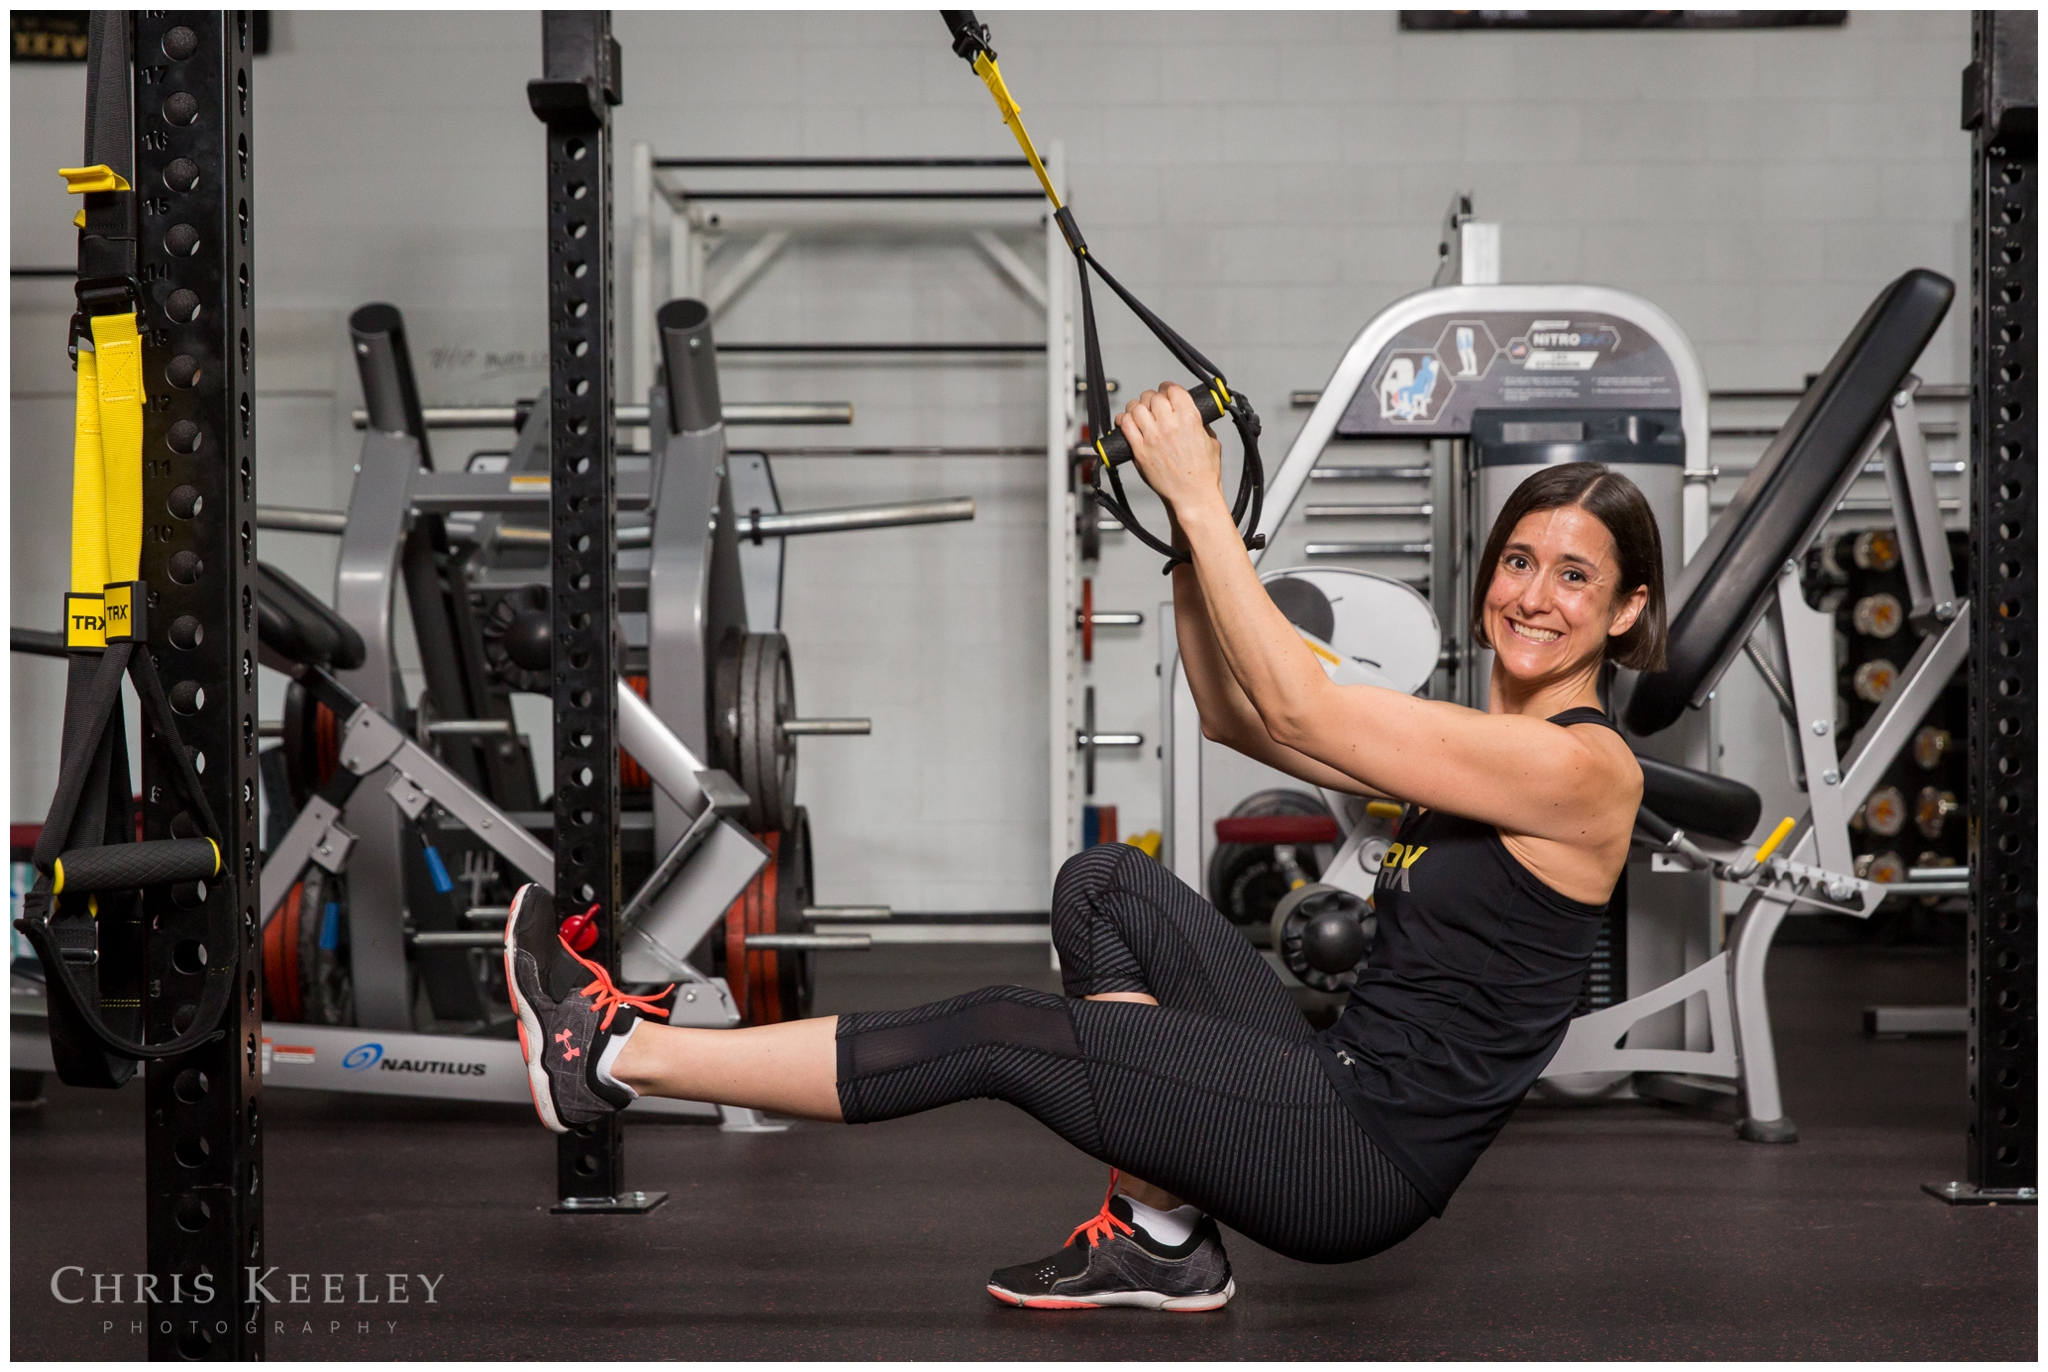 dover-new-hampshire-fitness-photography-trx-personal-trainer-photoshoot-01.jpg